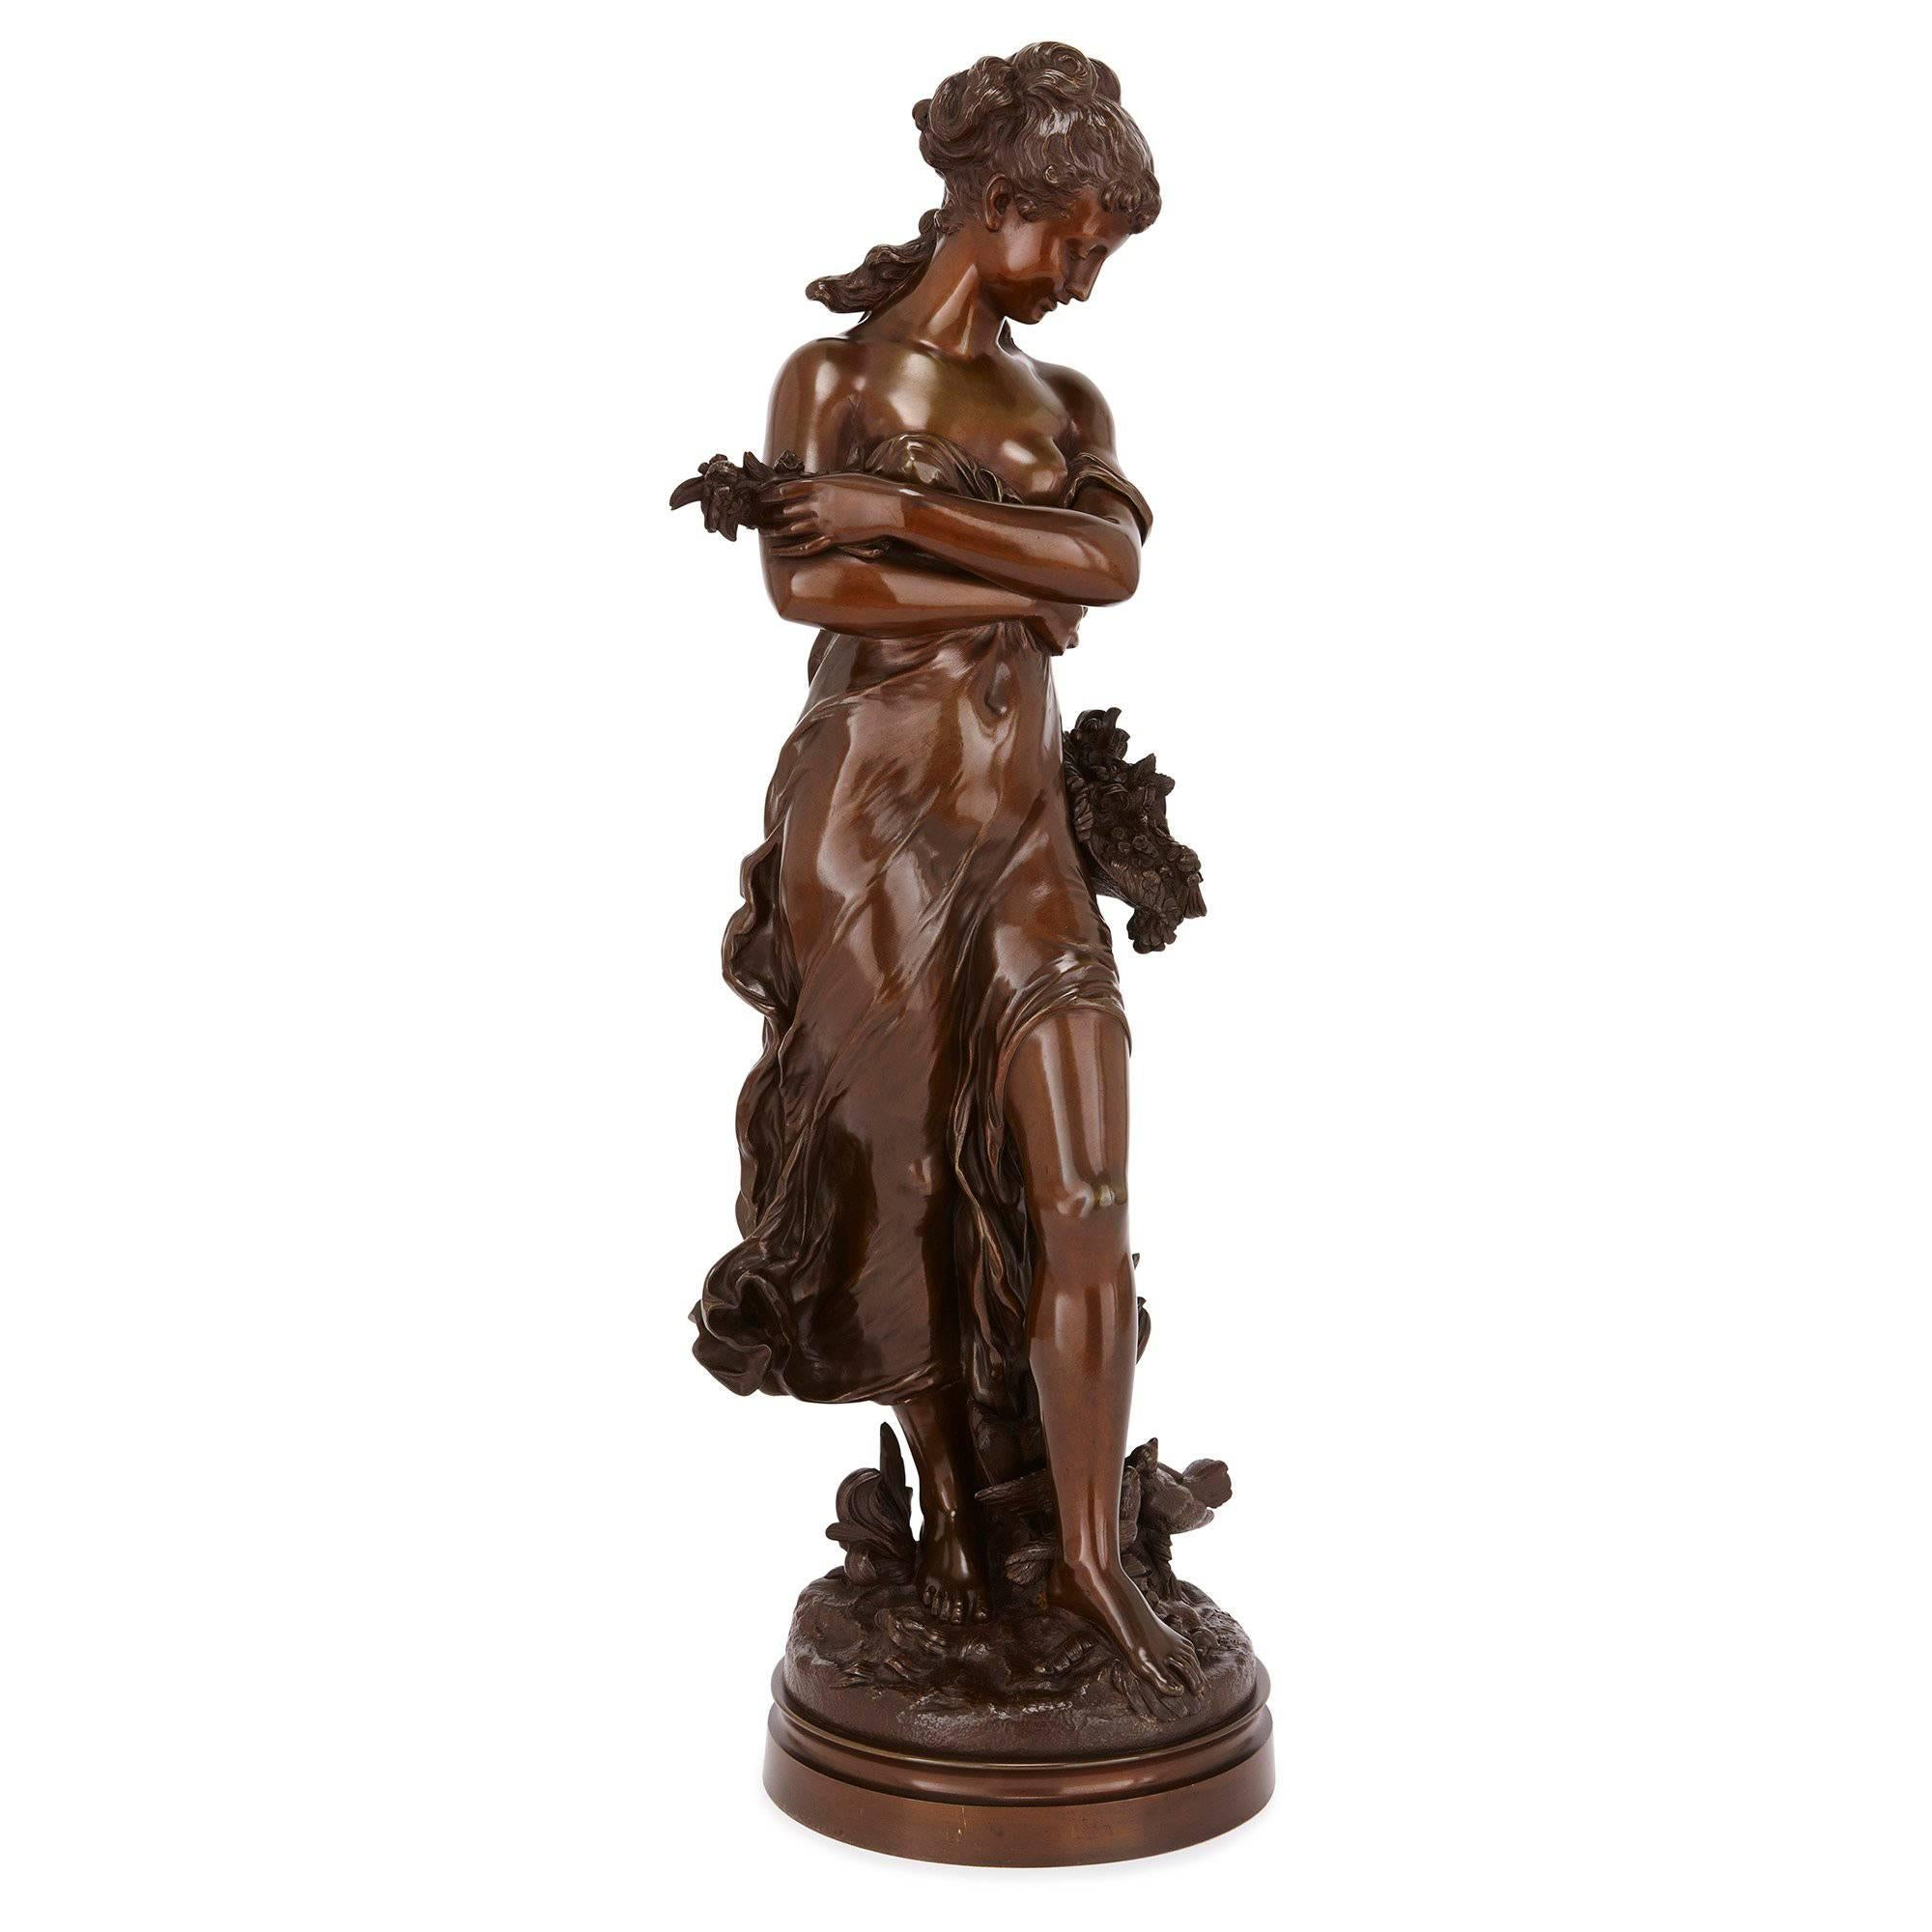 19th Century Bronze Sculpture of a Lady by Moreau